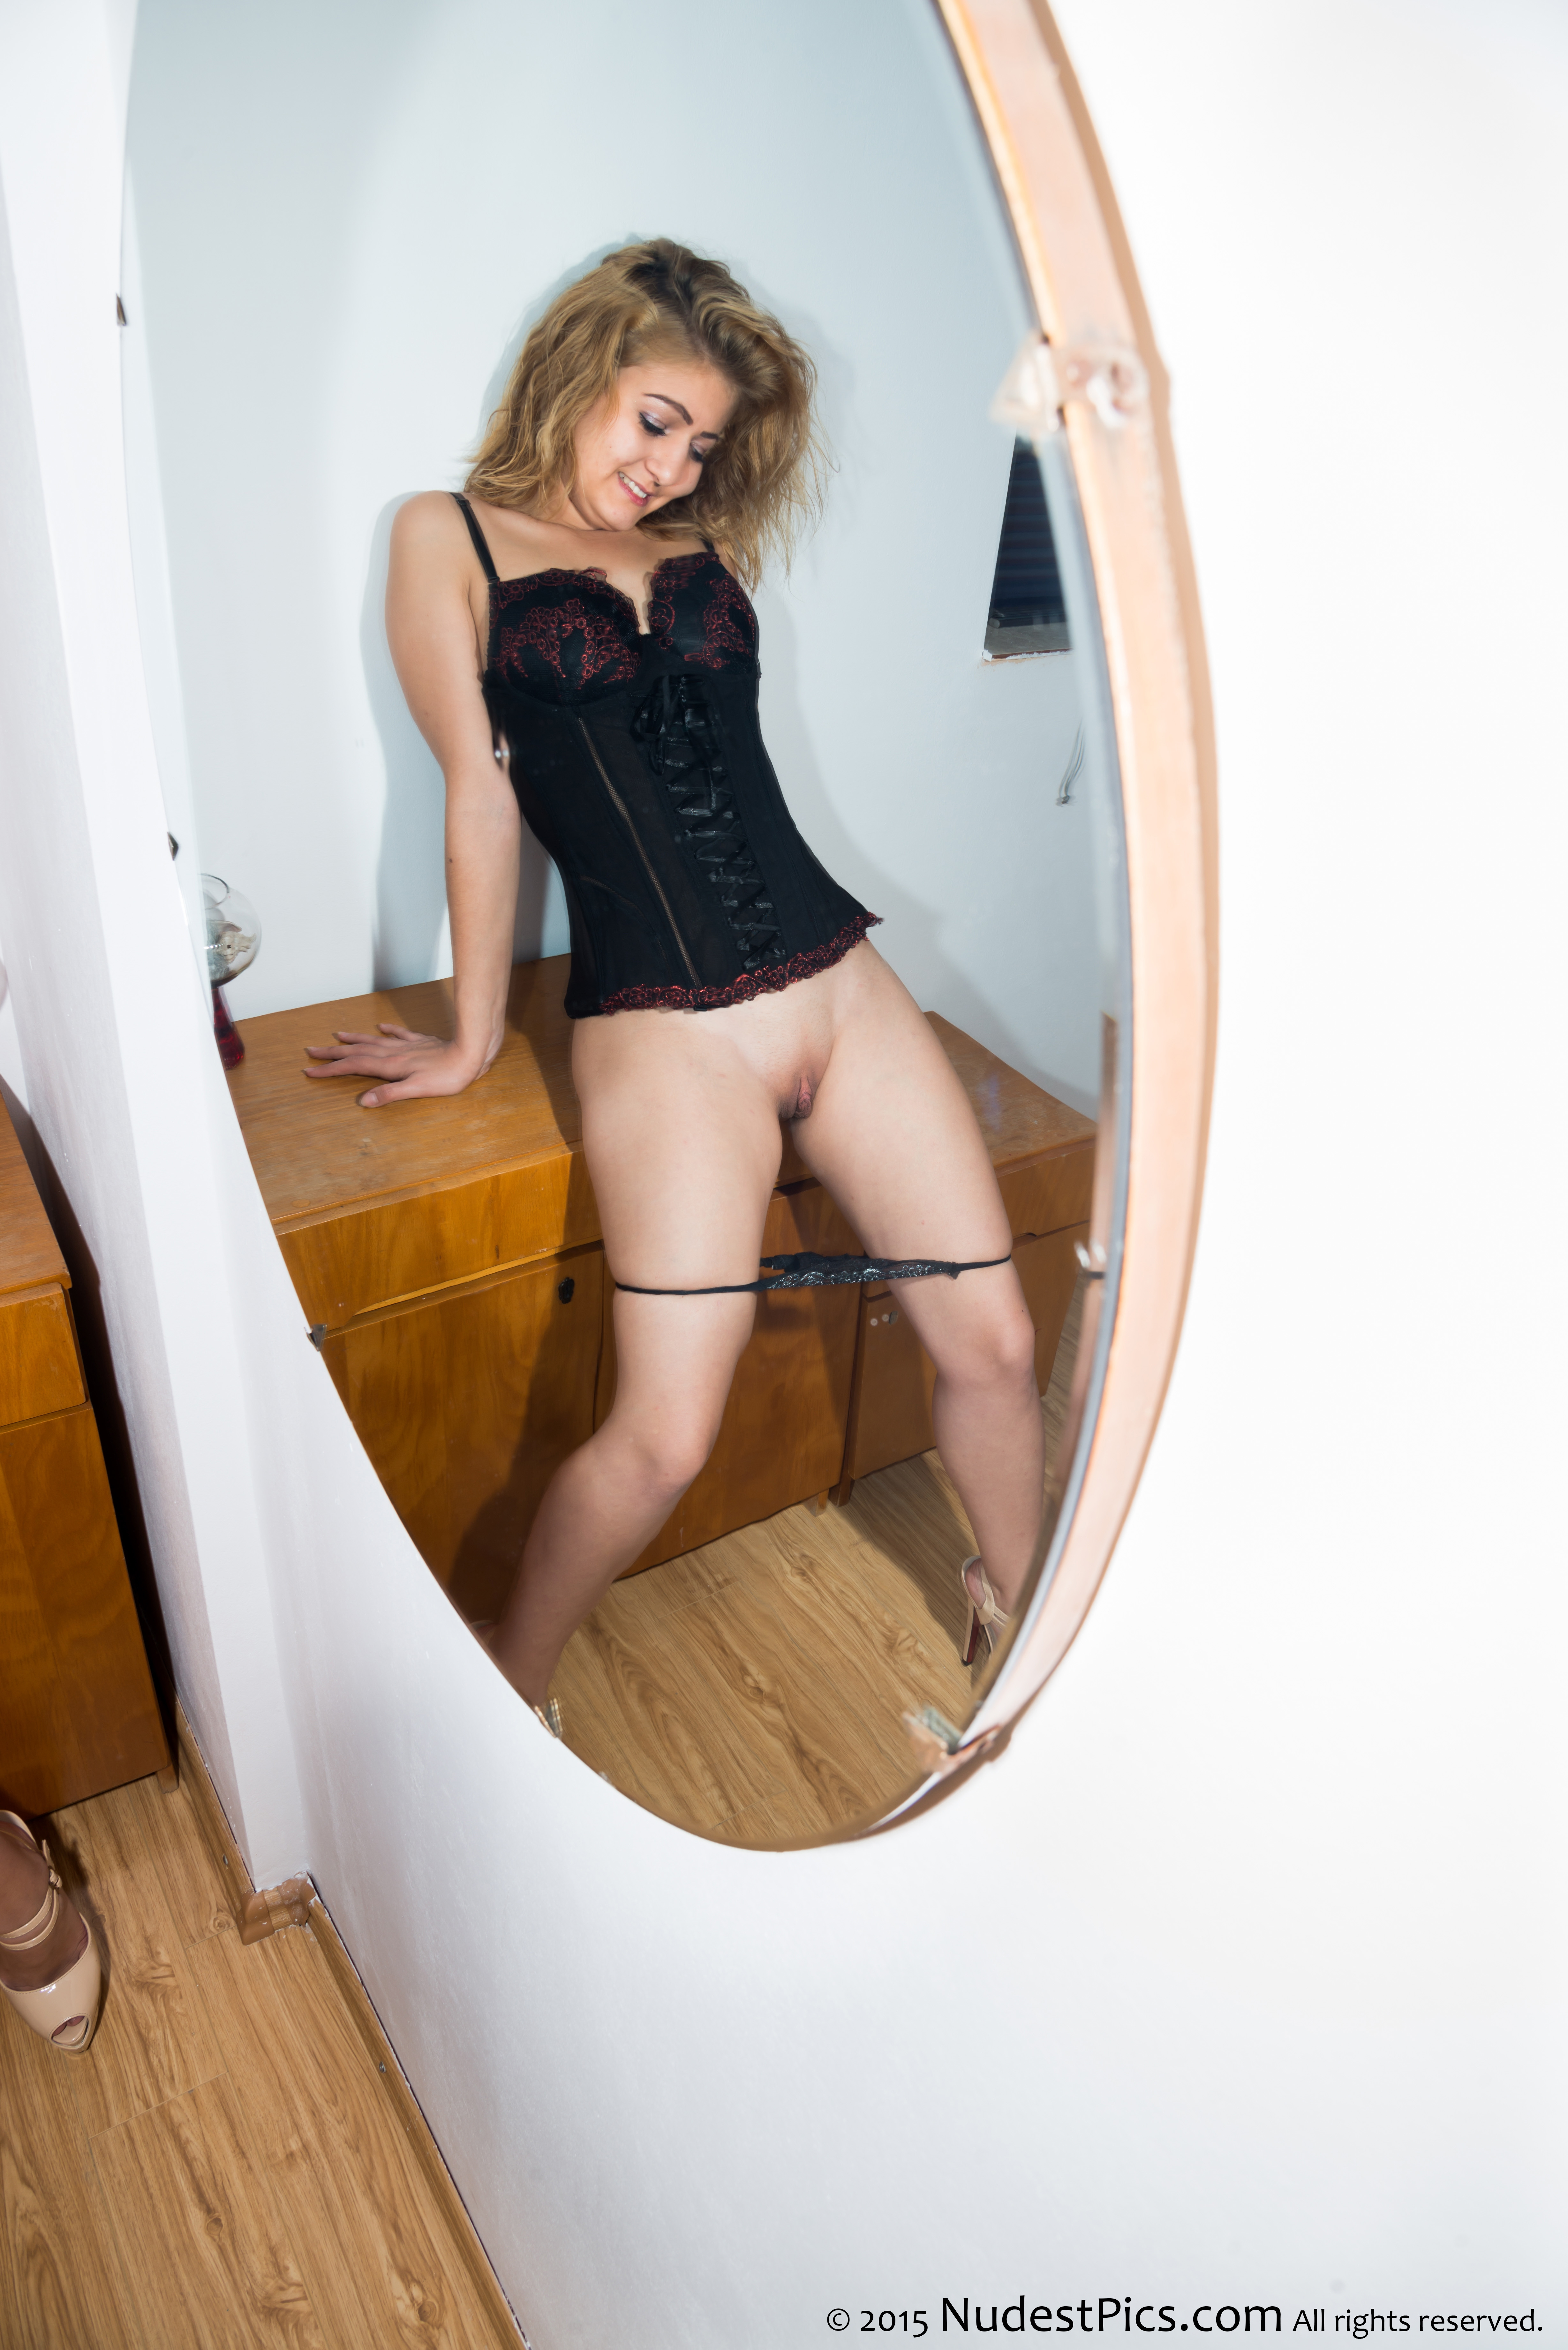 Silly Teen Girl Watching her Pussy in the Mirror full HD